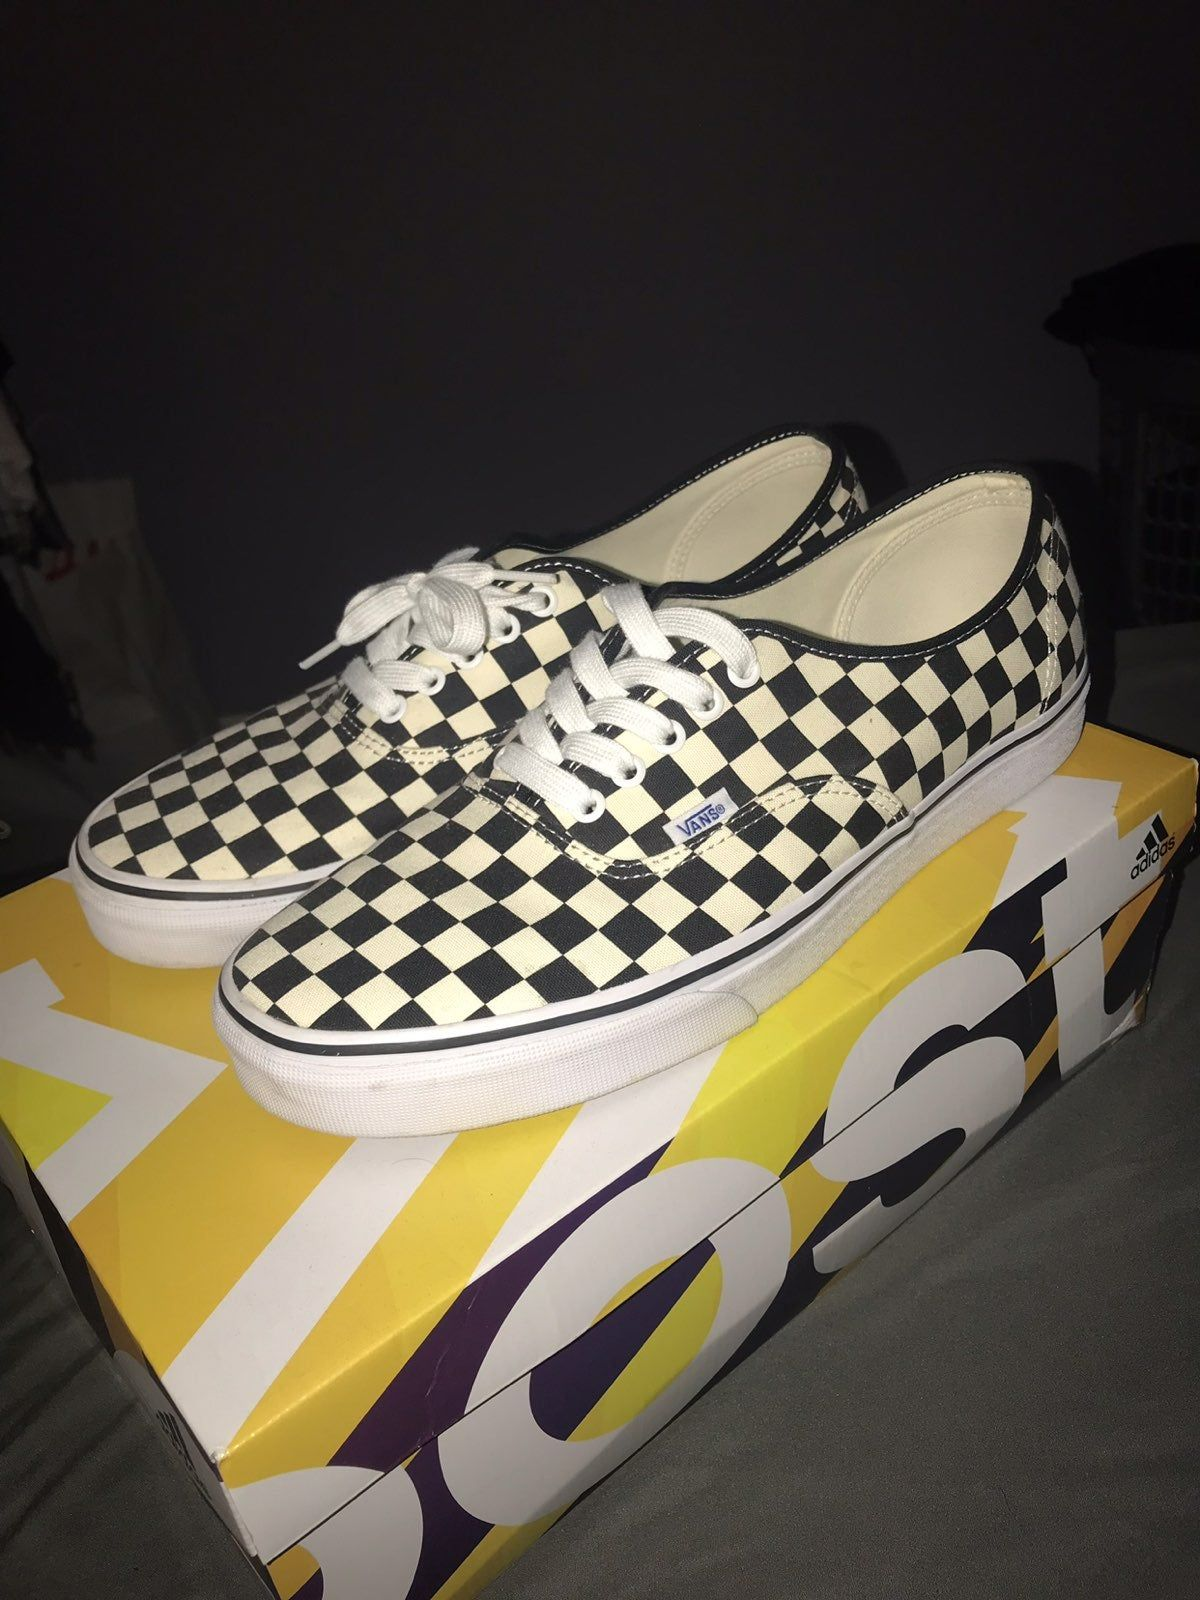 Worn once and never worn again Don't be afraid to offer | Vans